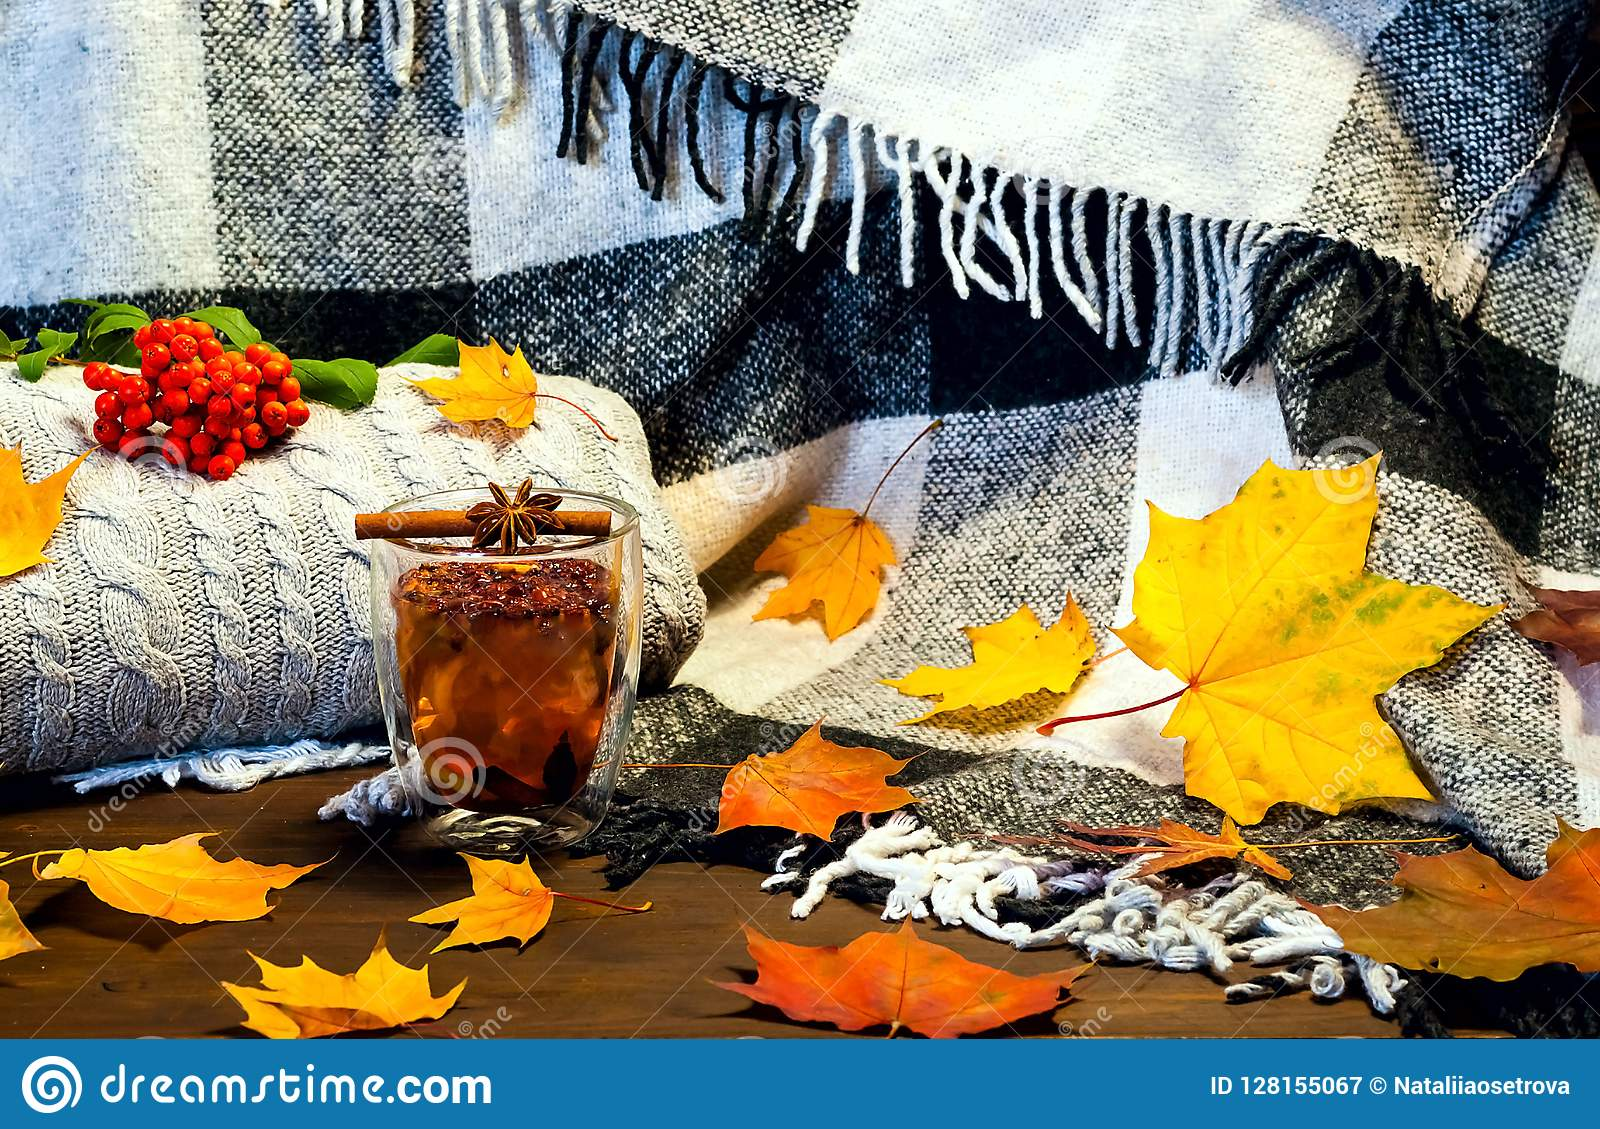 Autumn Home Decor.Glass Cup With Healing Tea And Cinnamon Sticks Amid  Bright Yellow Leaves